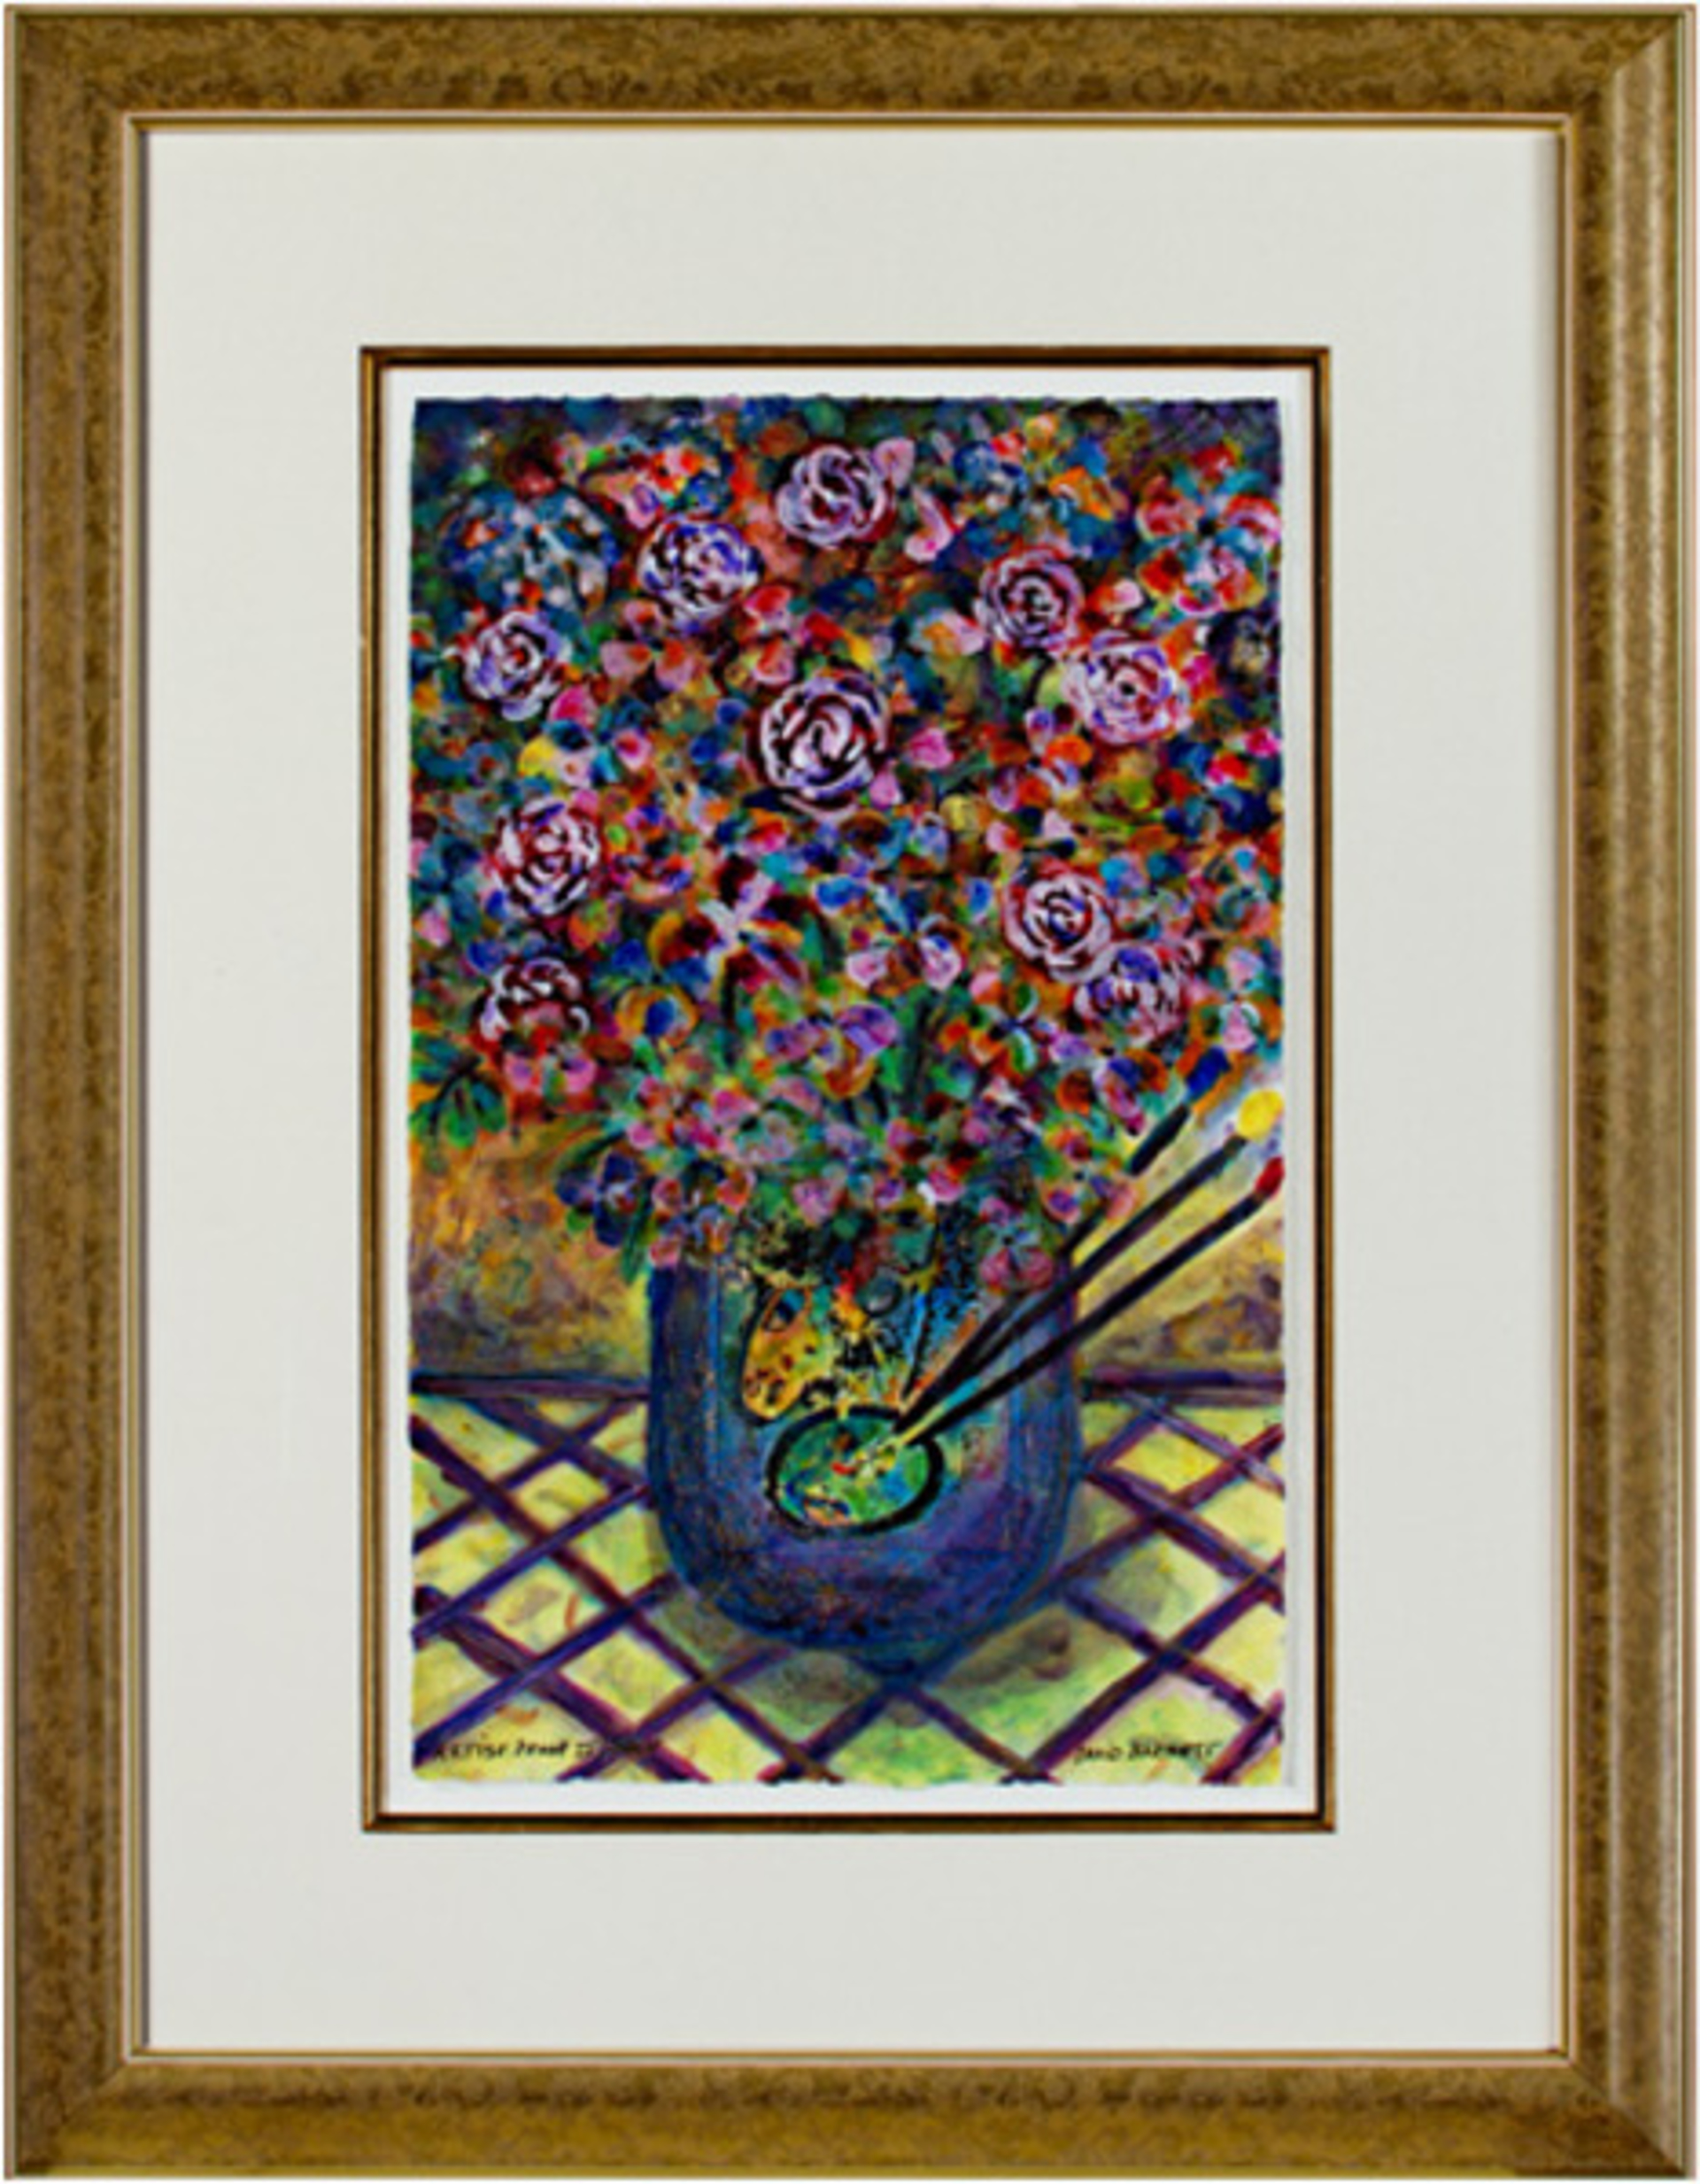 Famous Artist Series: Homage to Marc Chagall Artist's Palette Bouquet by David Barnett